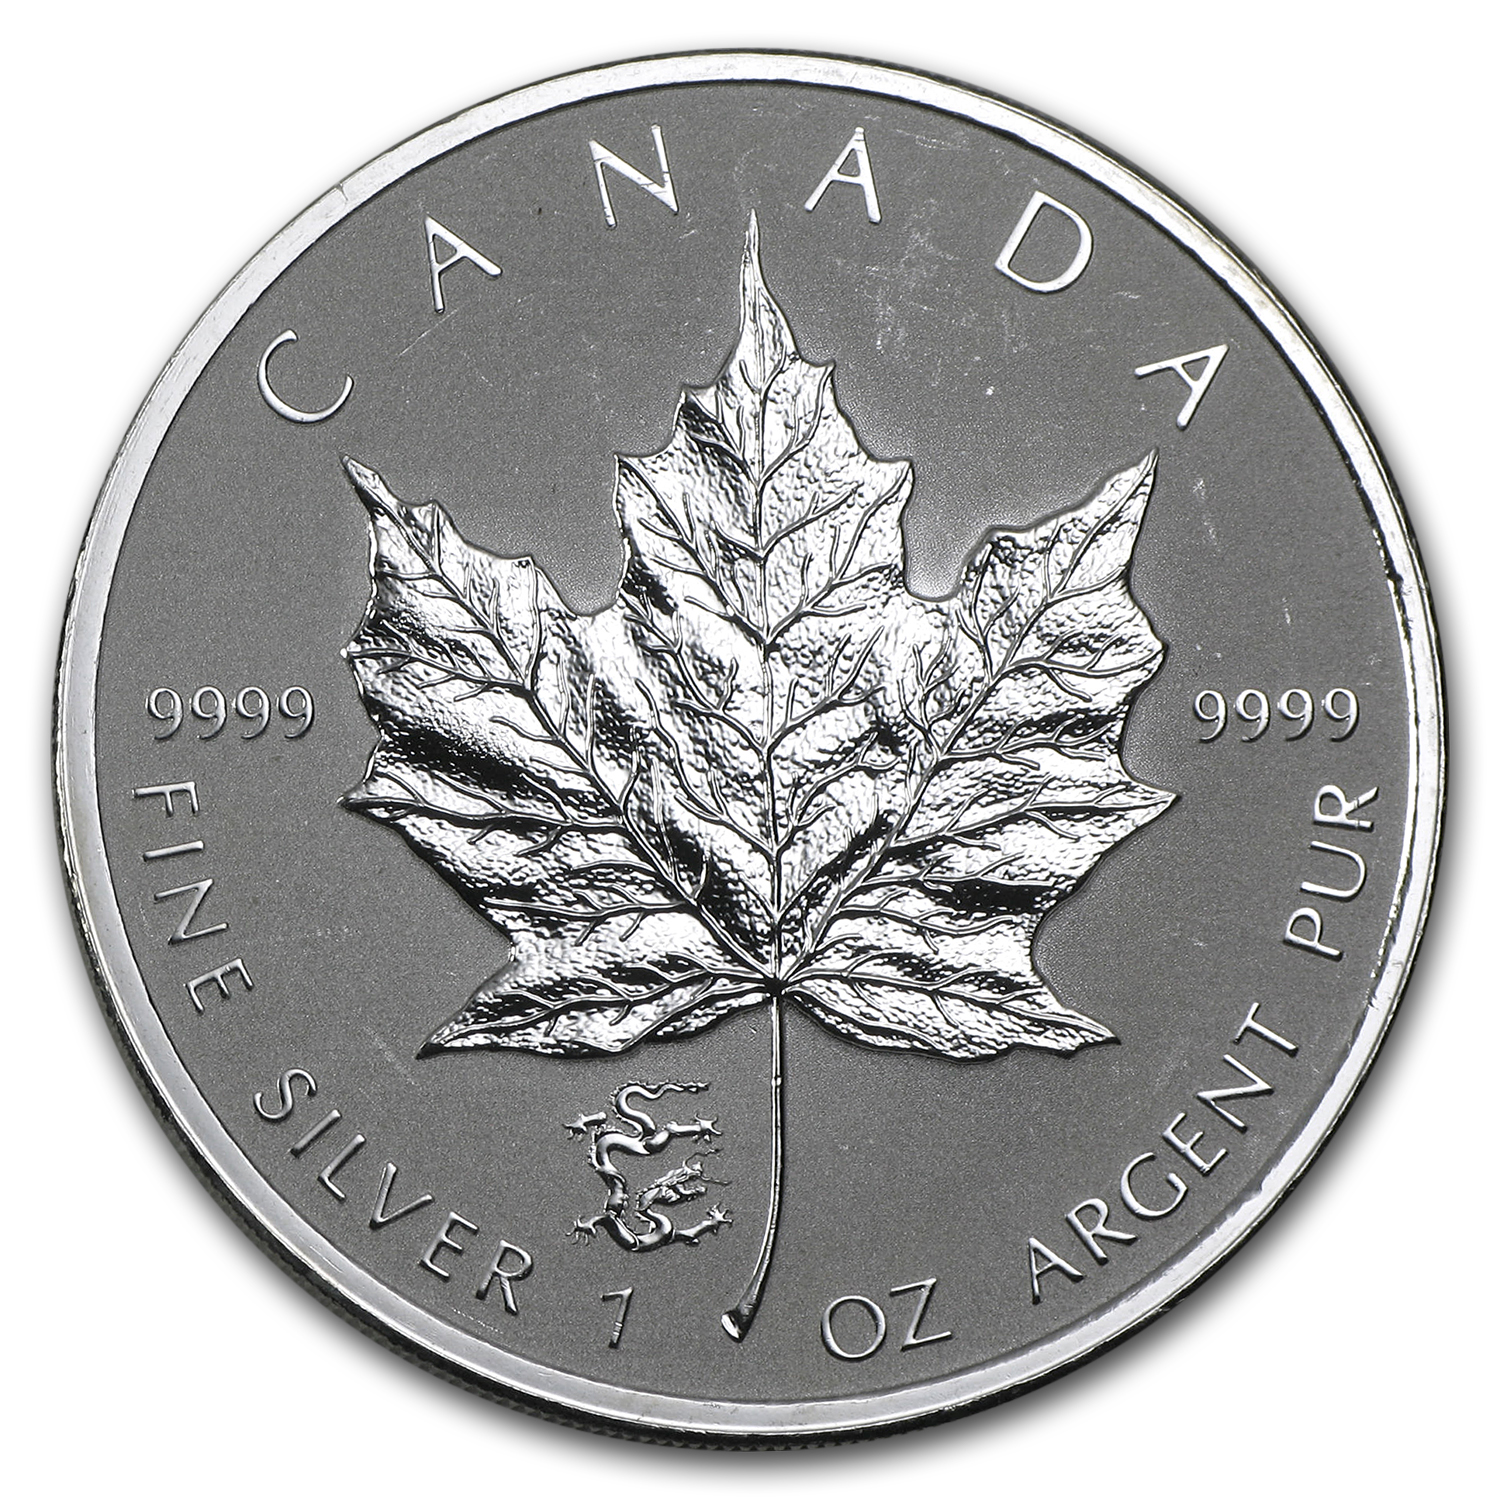 2012 Canada 1 oz Silver Maple Leaf Dragon Privy